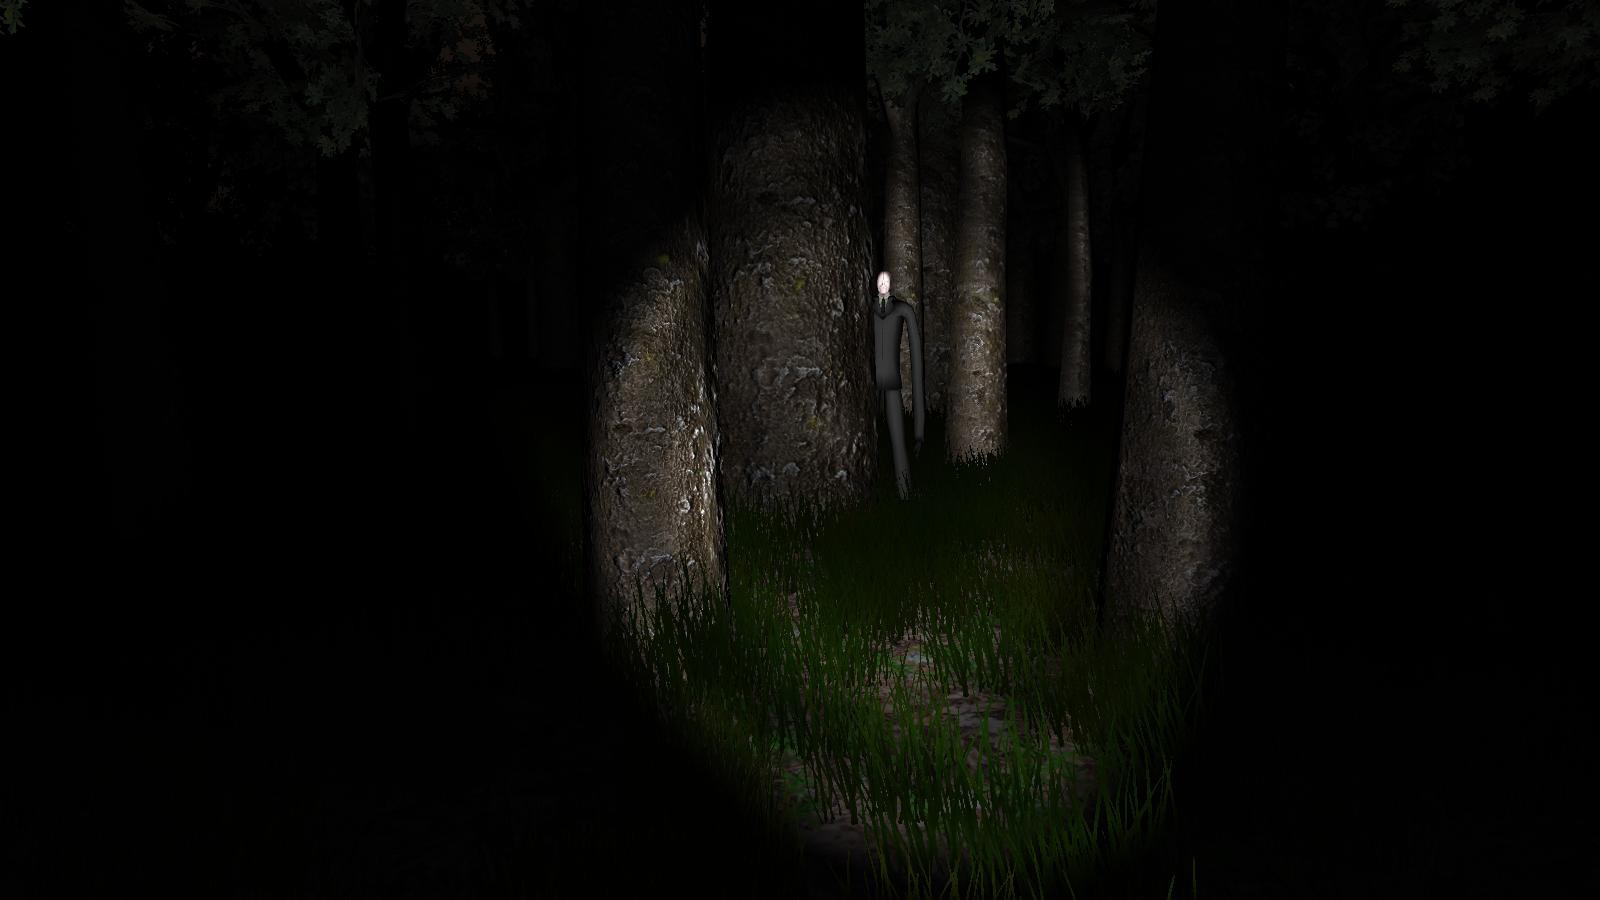 Cassie Carnage's House of Horror: Slender Man Video Game ...